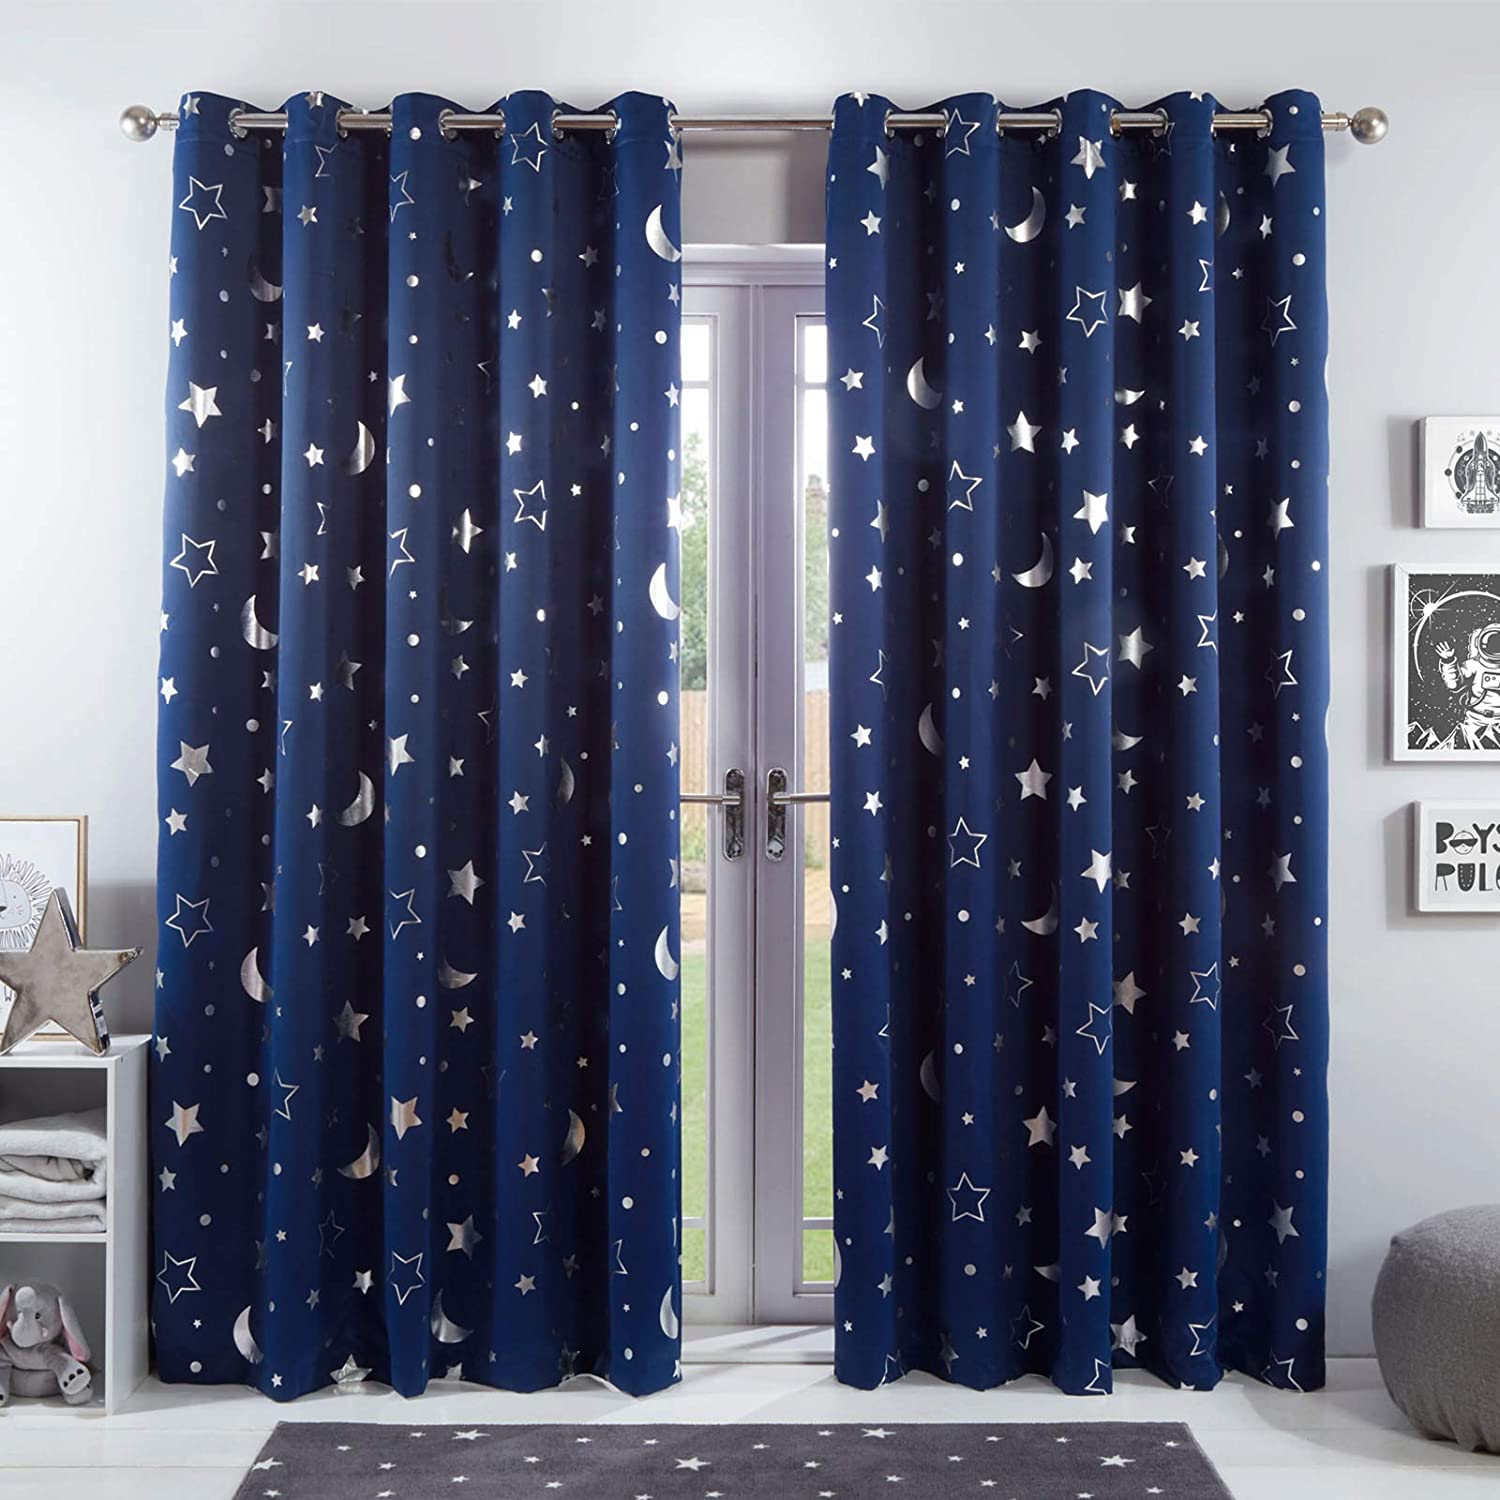 Star Thermal Insulated Curtains Eyelet Printed Window Bedroom Drapes